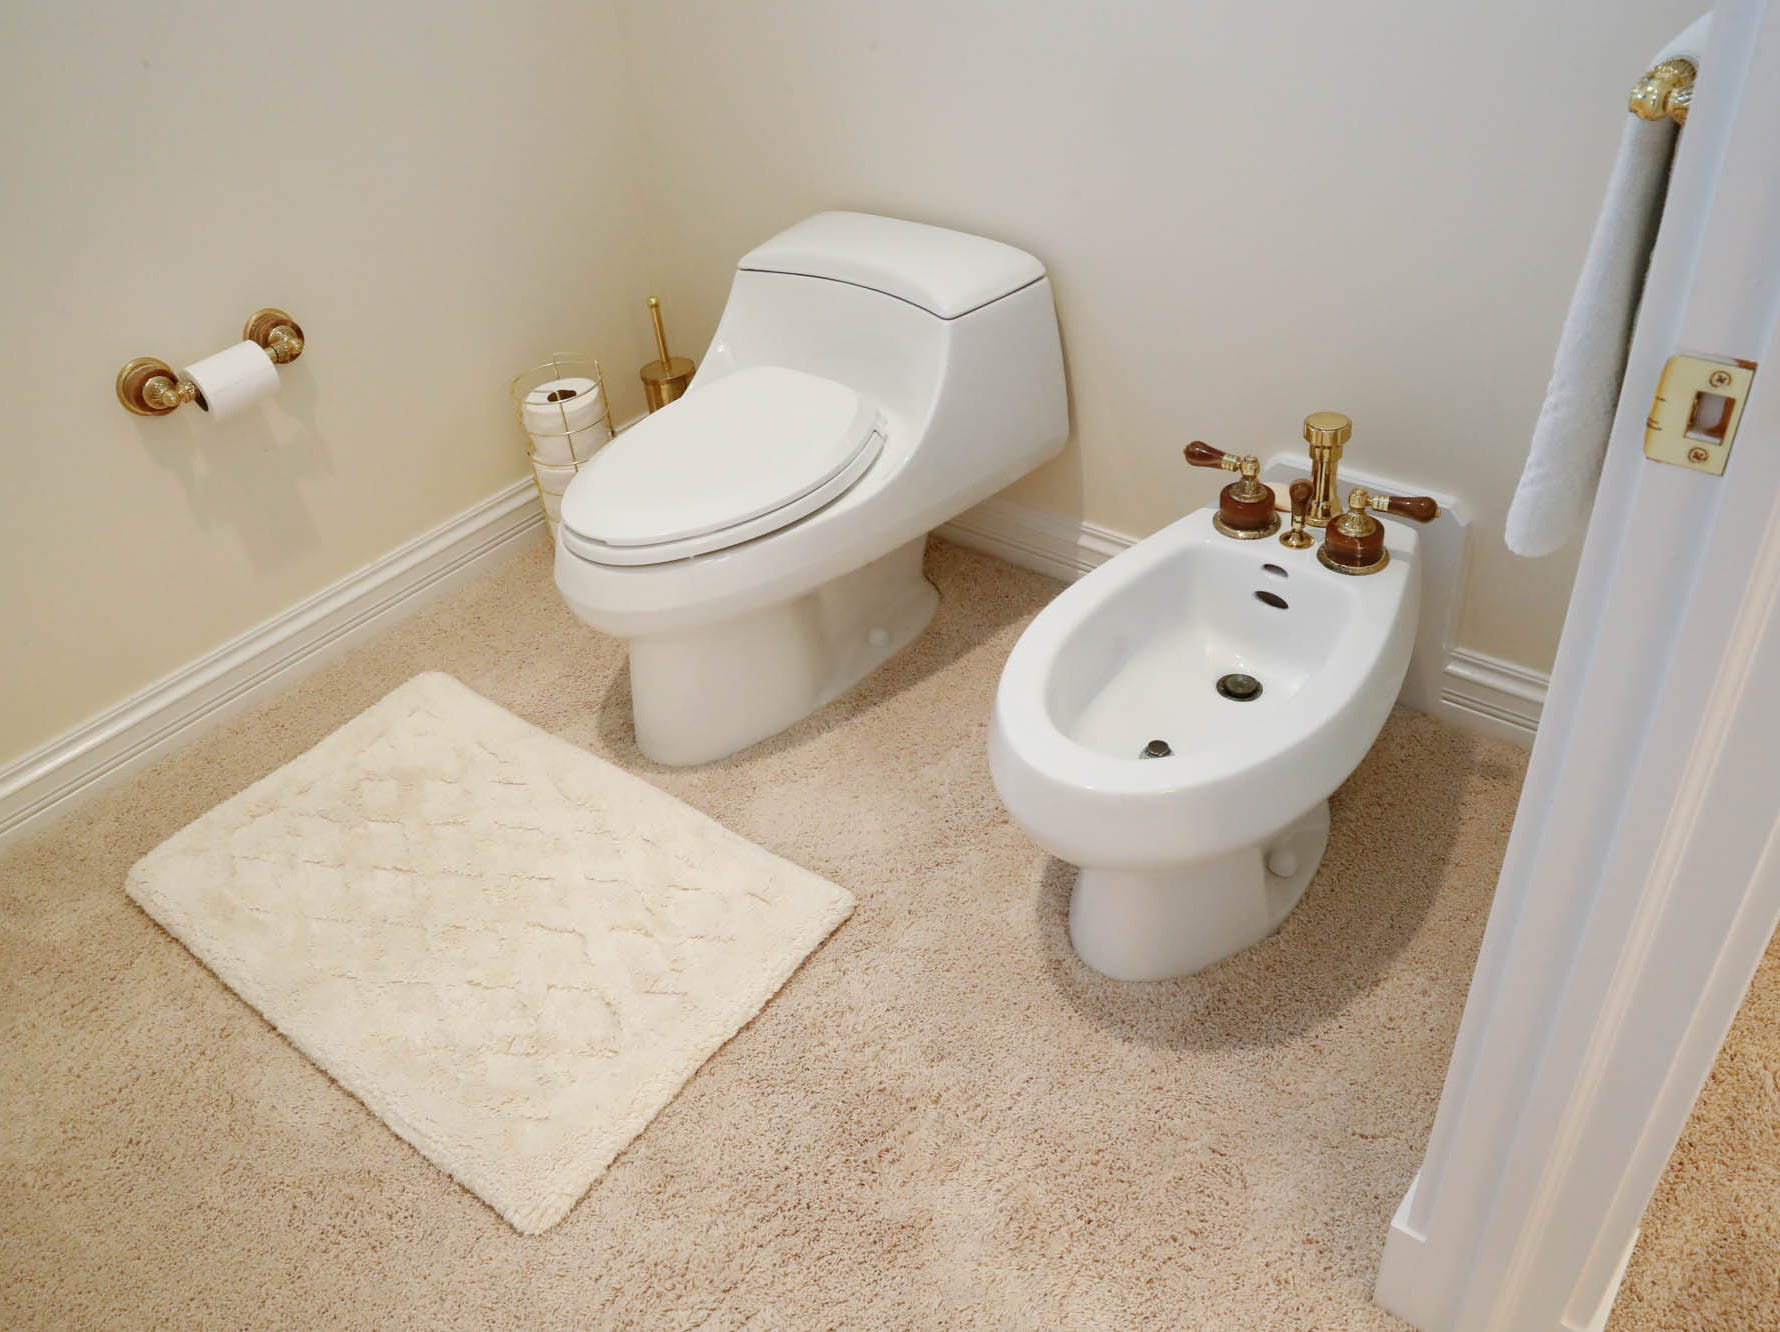 A bathroom features a bidet with gold accents at a Greenwood home up for sale at 1216 Stone Ridge Court, Greenwood, Ind. on Wednesday, Jan. 30, 2019. The home features 8,234 square feet, four bedrooms, two master suits, a 10 car garage, and exercise room.